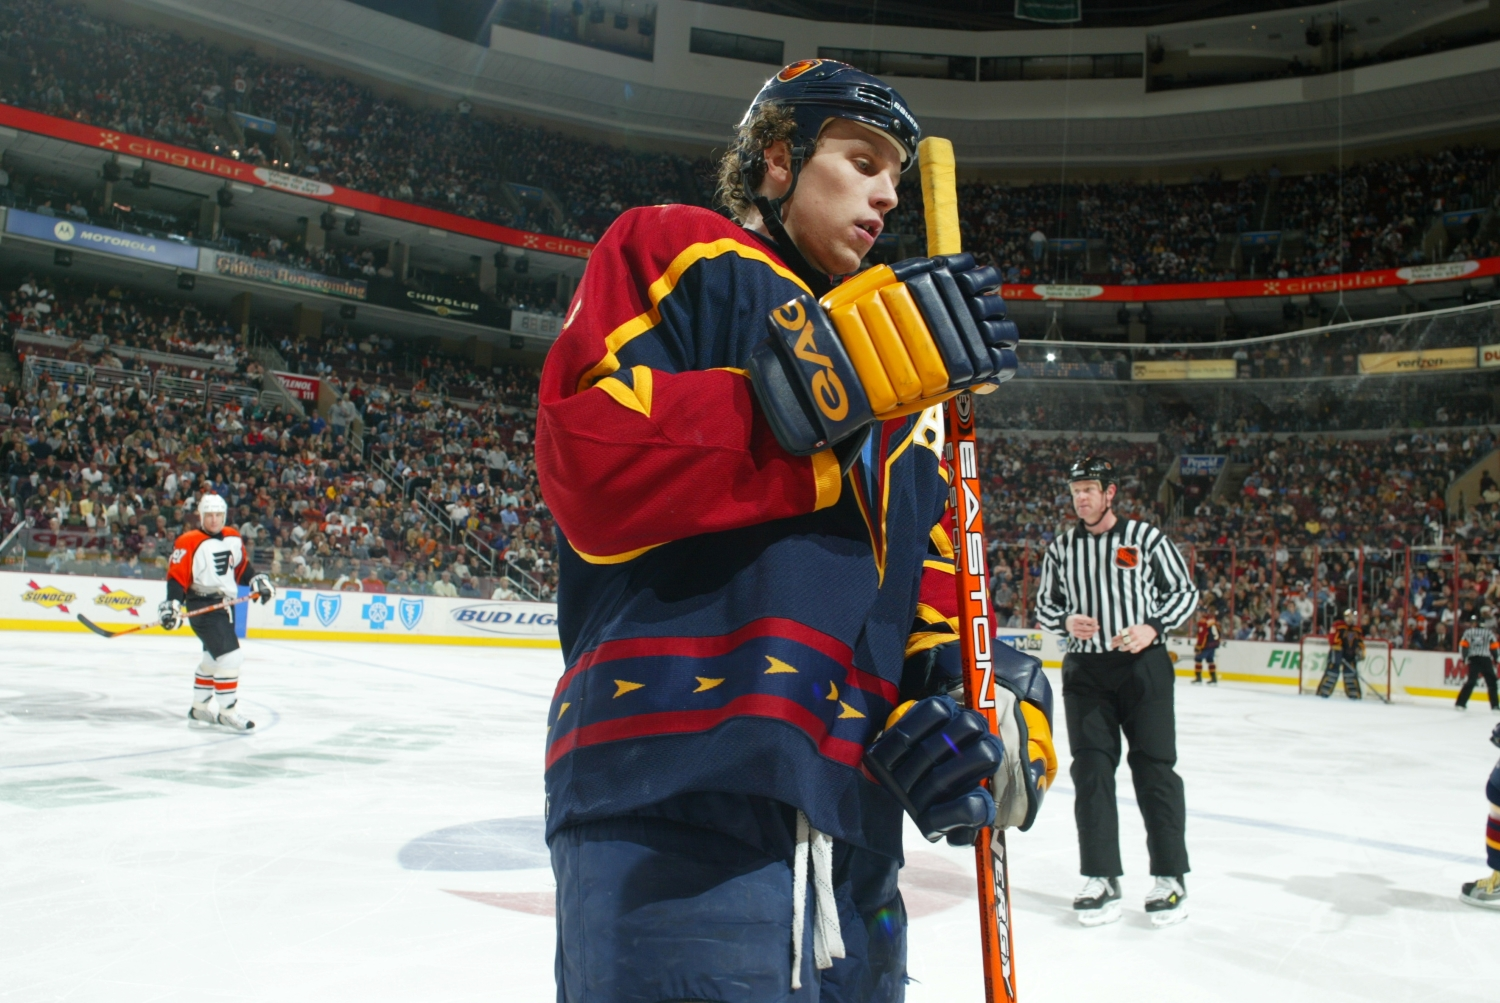 Dany Heatley stands on the ice during an Atlanta Thrashers game from the 2003 season.